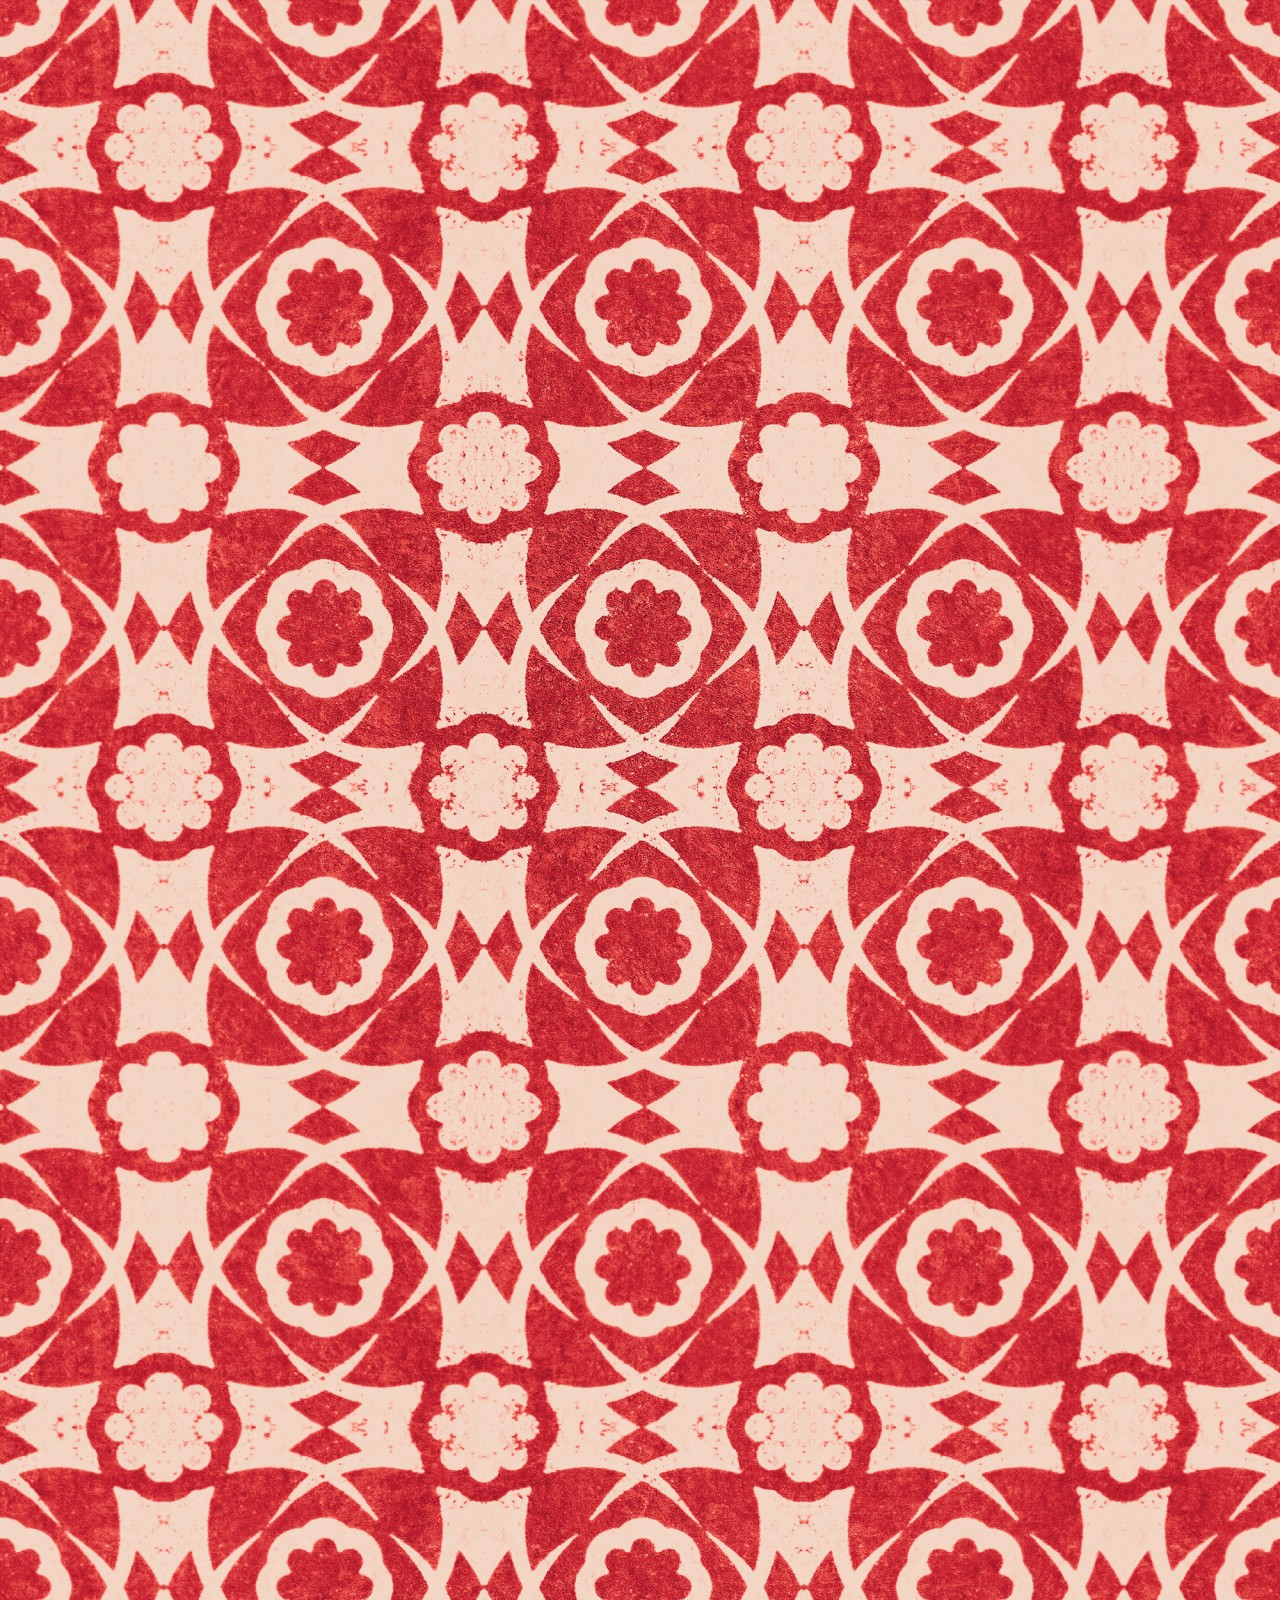 AEGEAN TILES Red Wallpaper